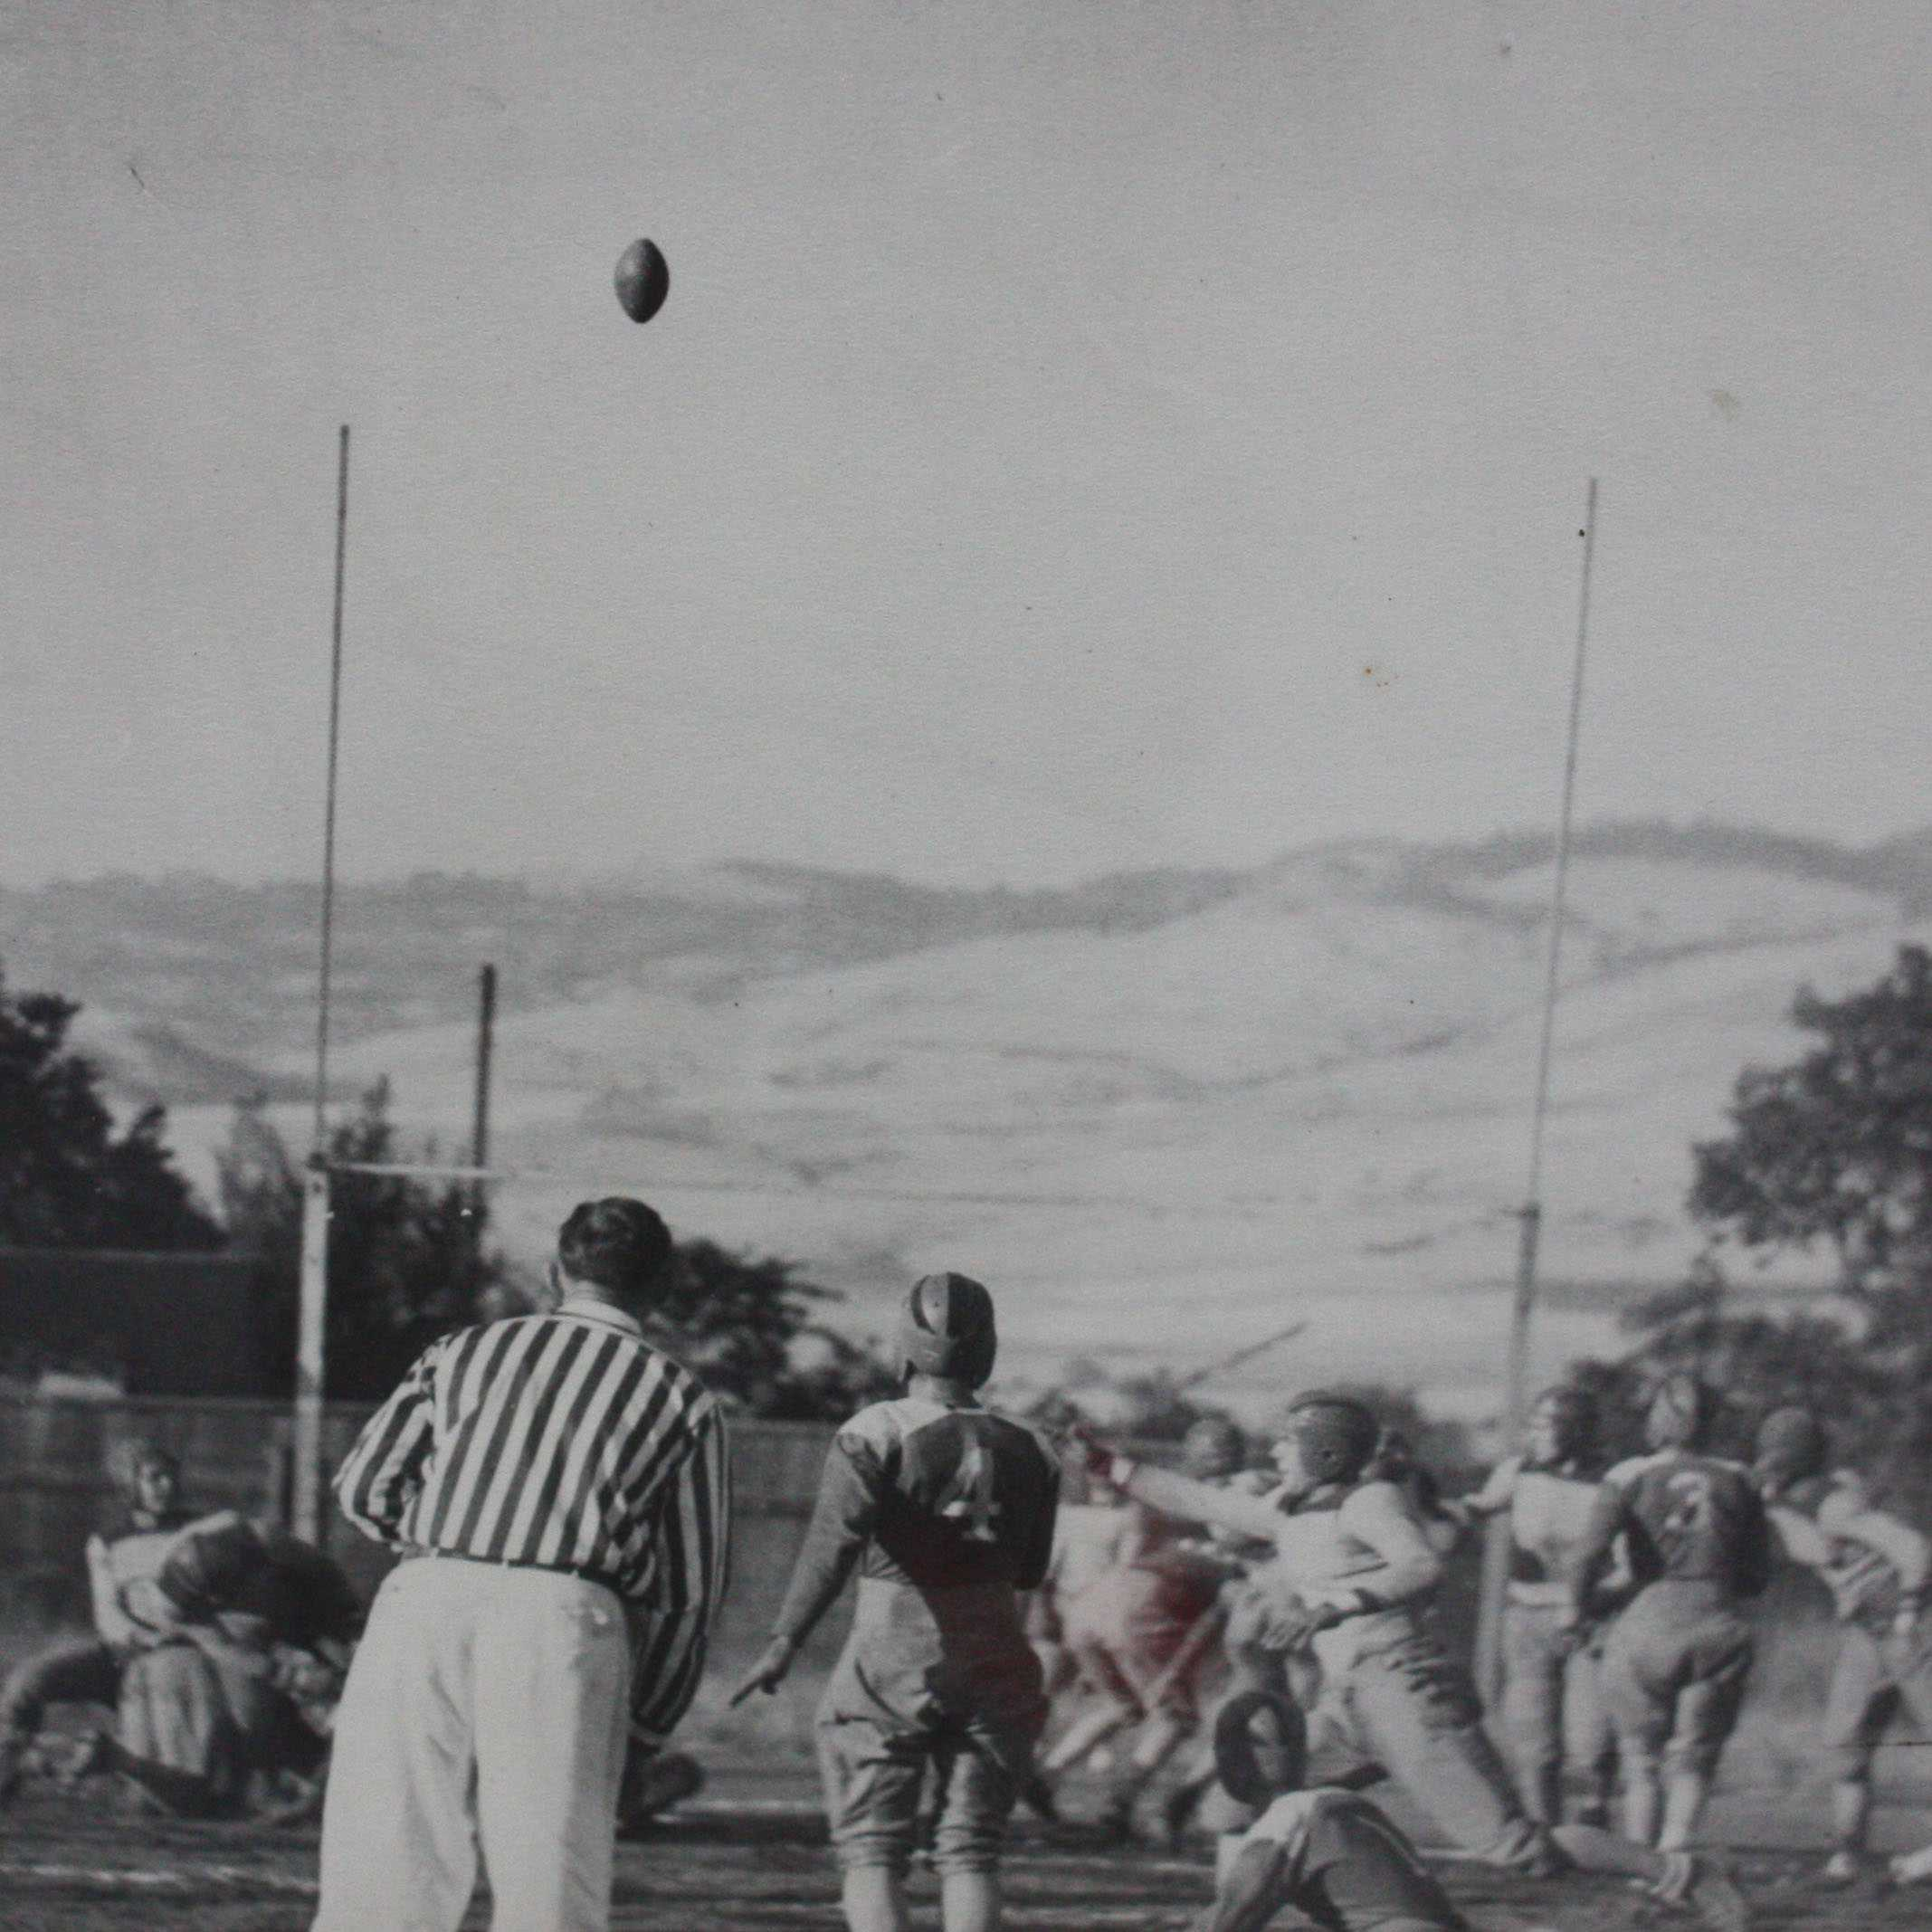 Lakeview 0, Ashland 20. Oct. 19 1933